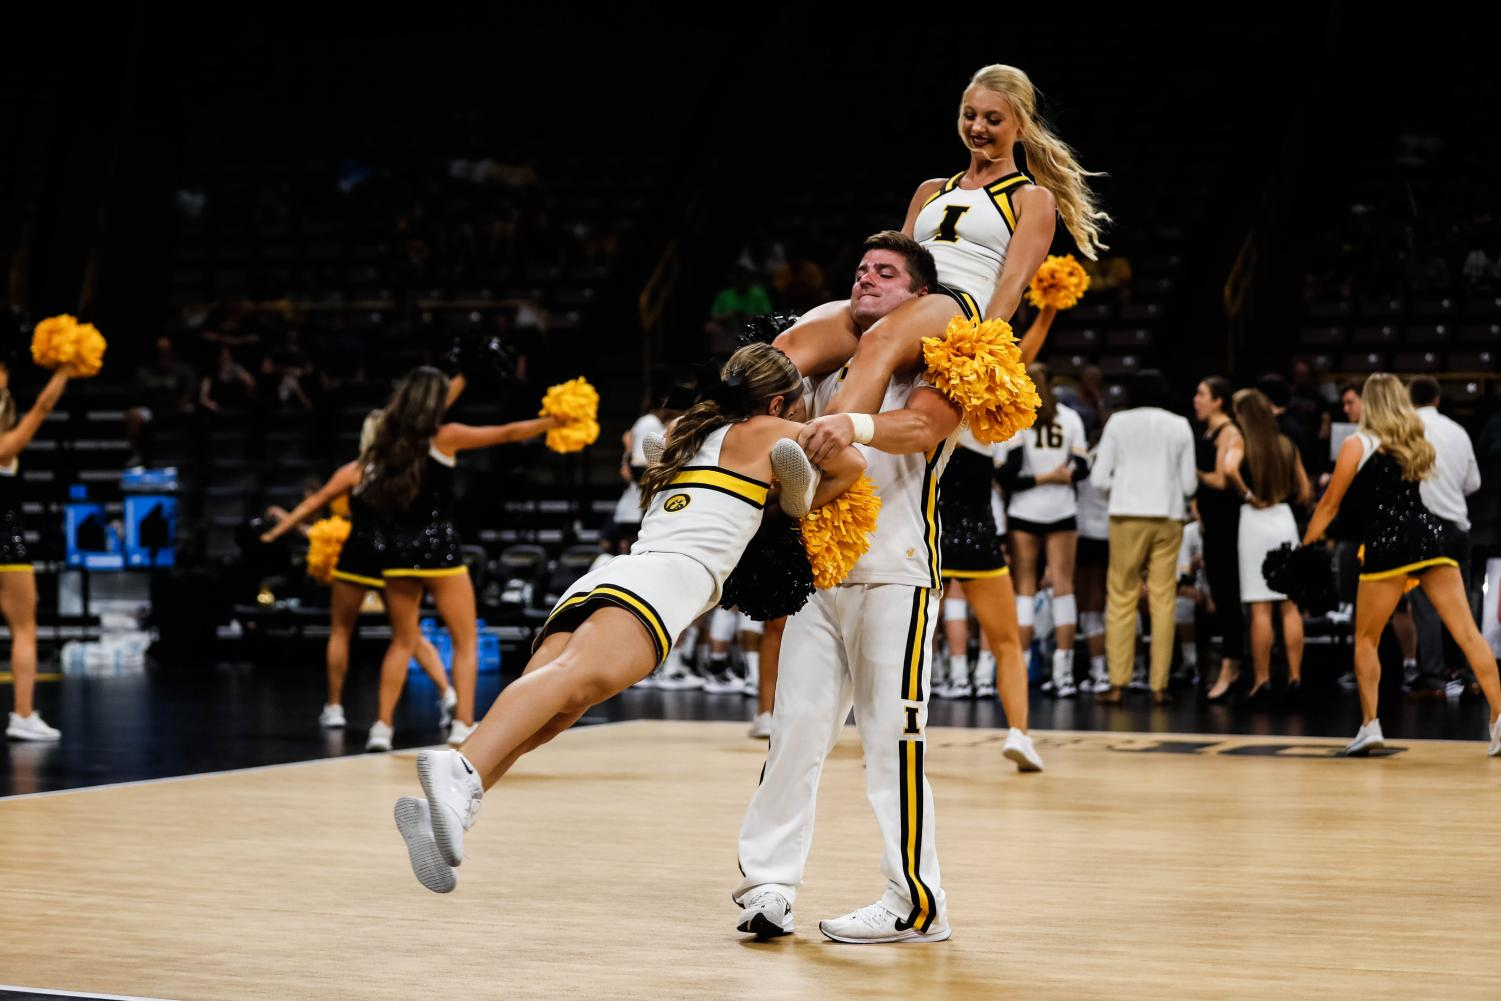 Iowa+cheerleaders+do+the+helicopter+during+a+volleyball+match+between+Iowa+and+Washington+at+Carver+Hawkeye+Arena+on+Saturday%2C+September+7%2C+2019.+The+Hawkeyes+were+defeated+by+the+Huskies%2C+3-1.